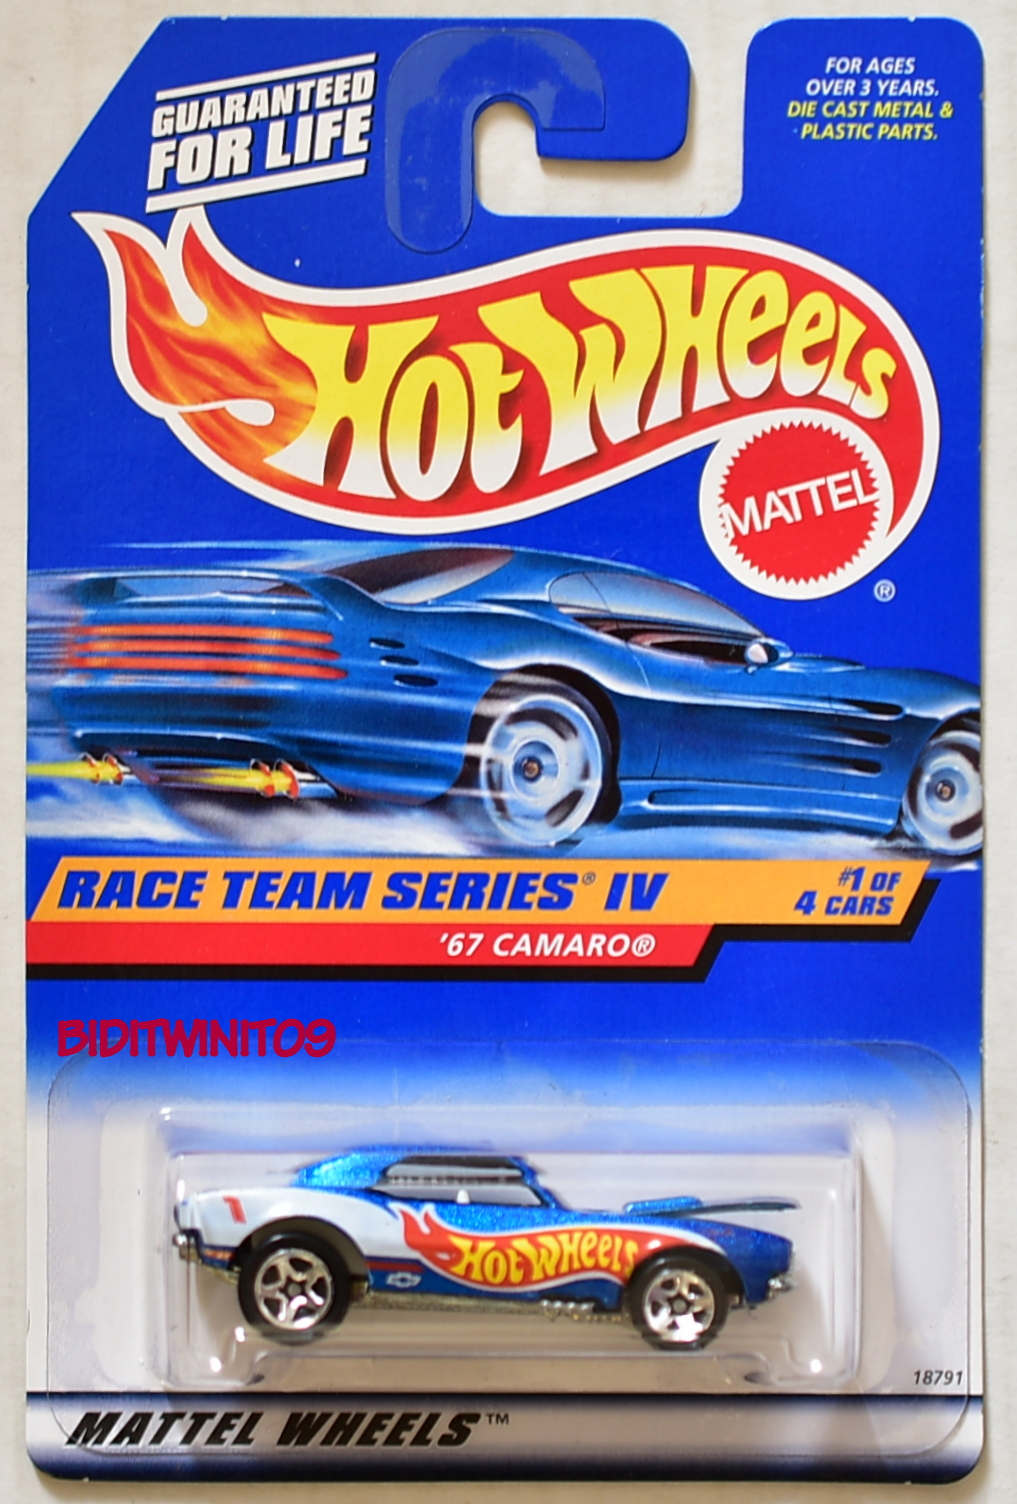 HOT WHEELS 1998 RACE TEAM SERIES IV '67 CAMARO MIB